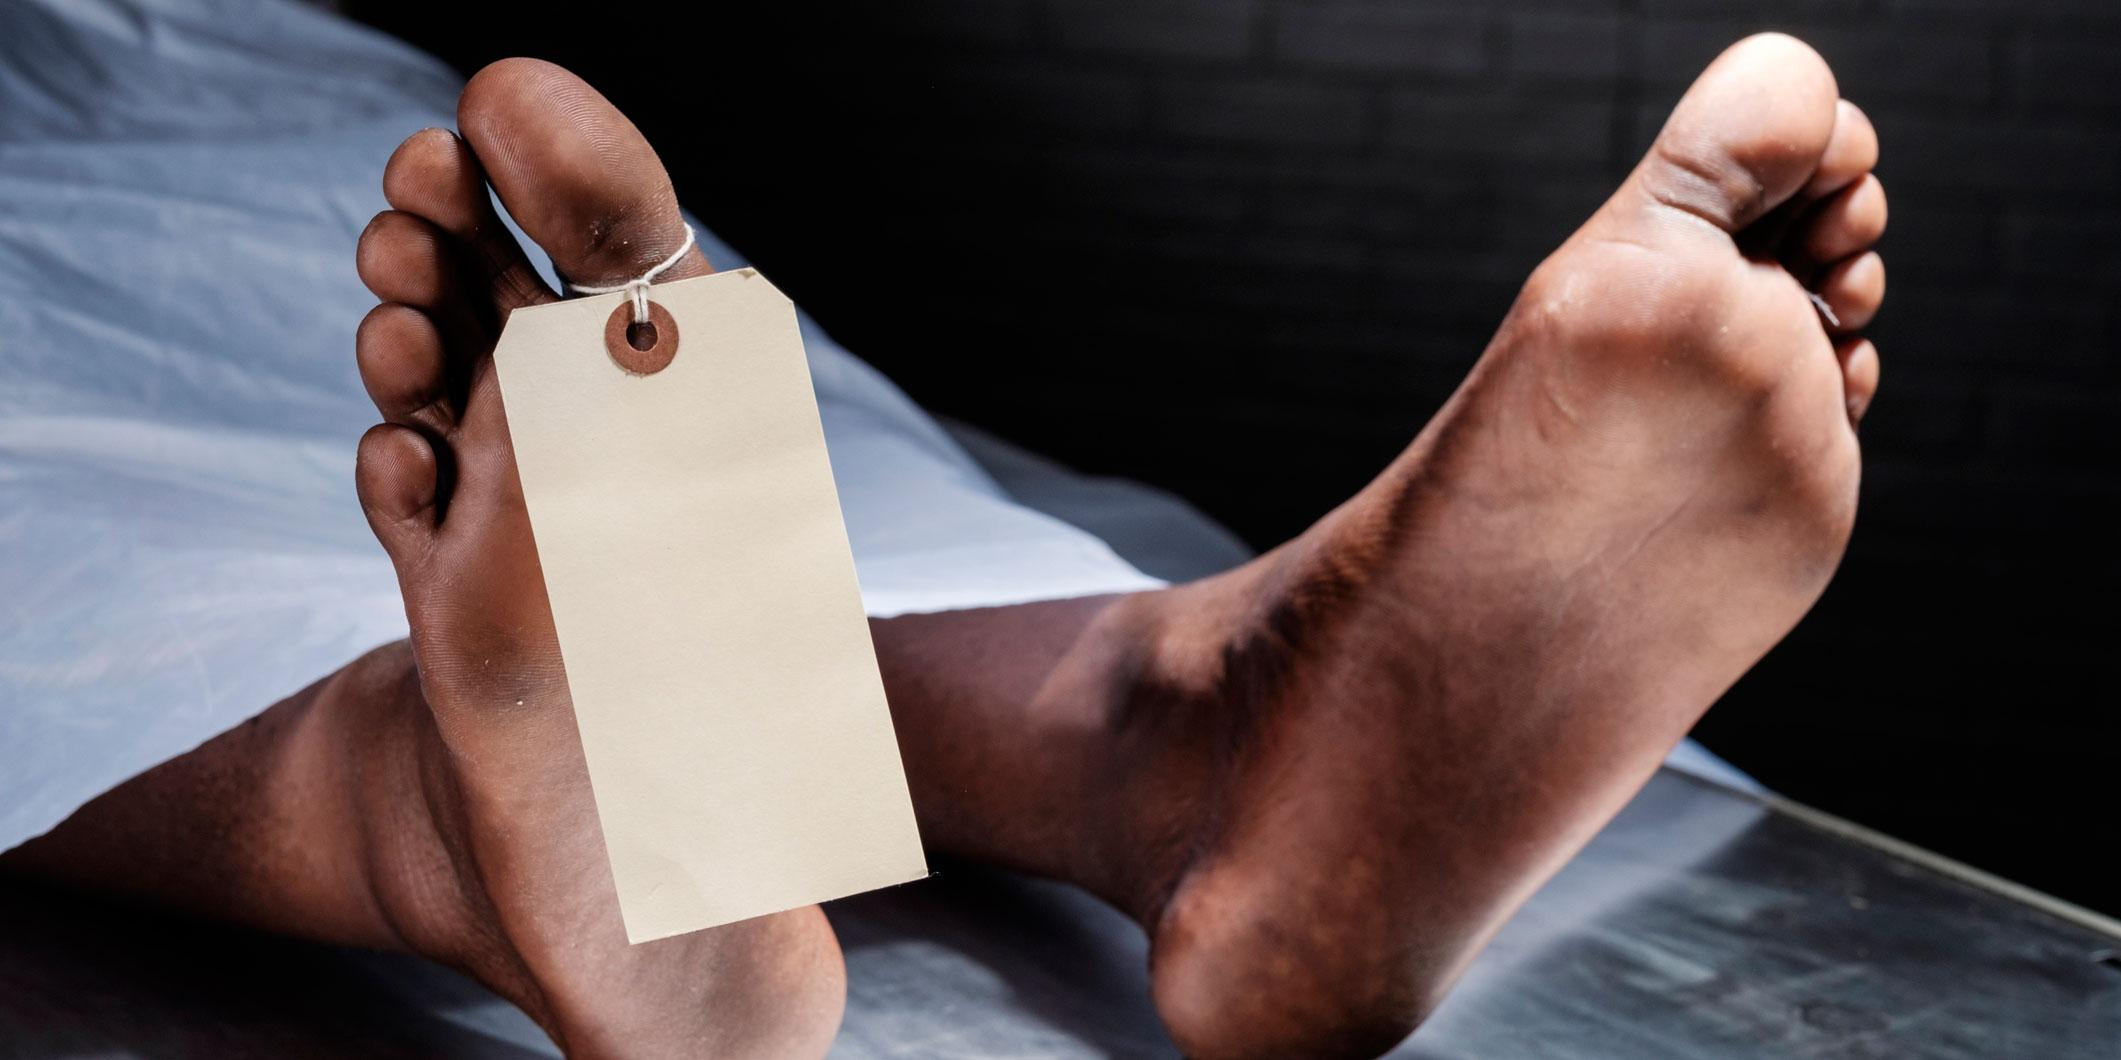 Man declared dead wakes up moments before autopsy